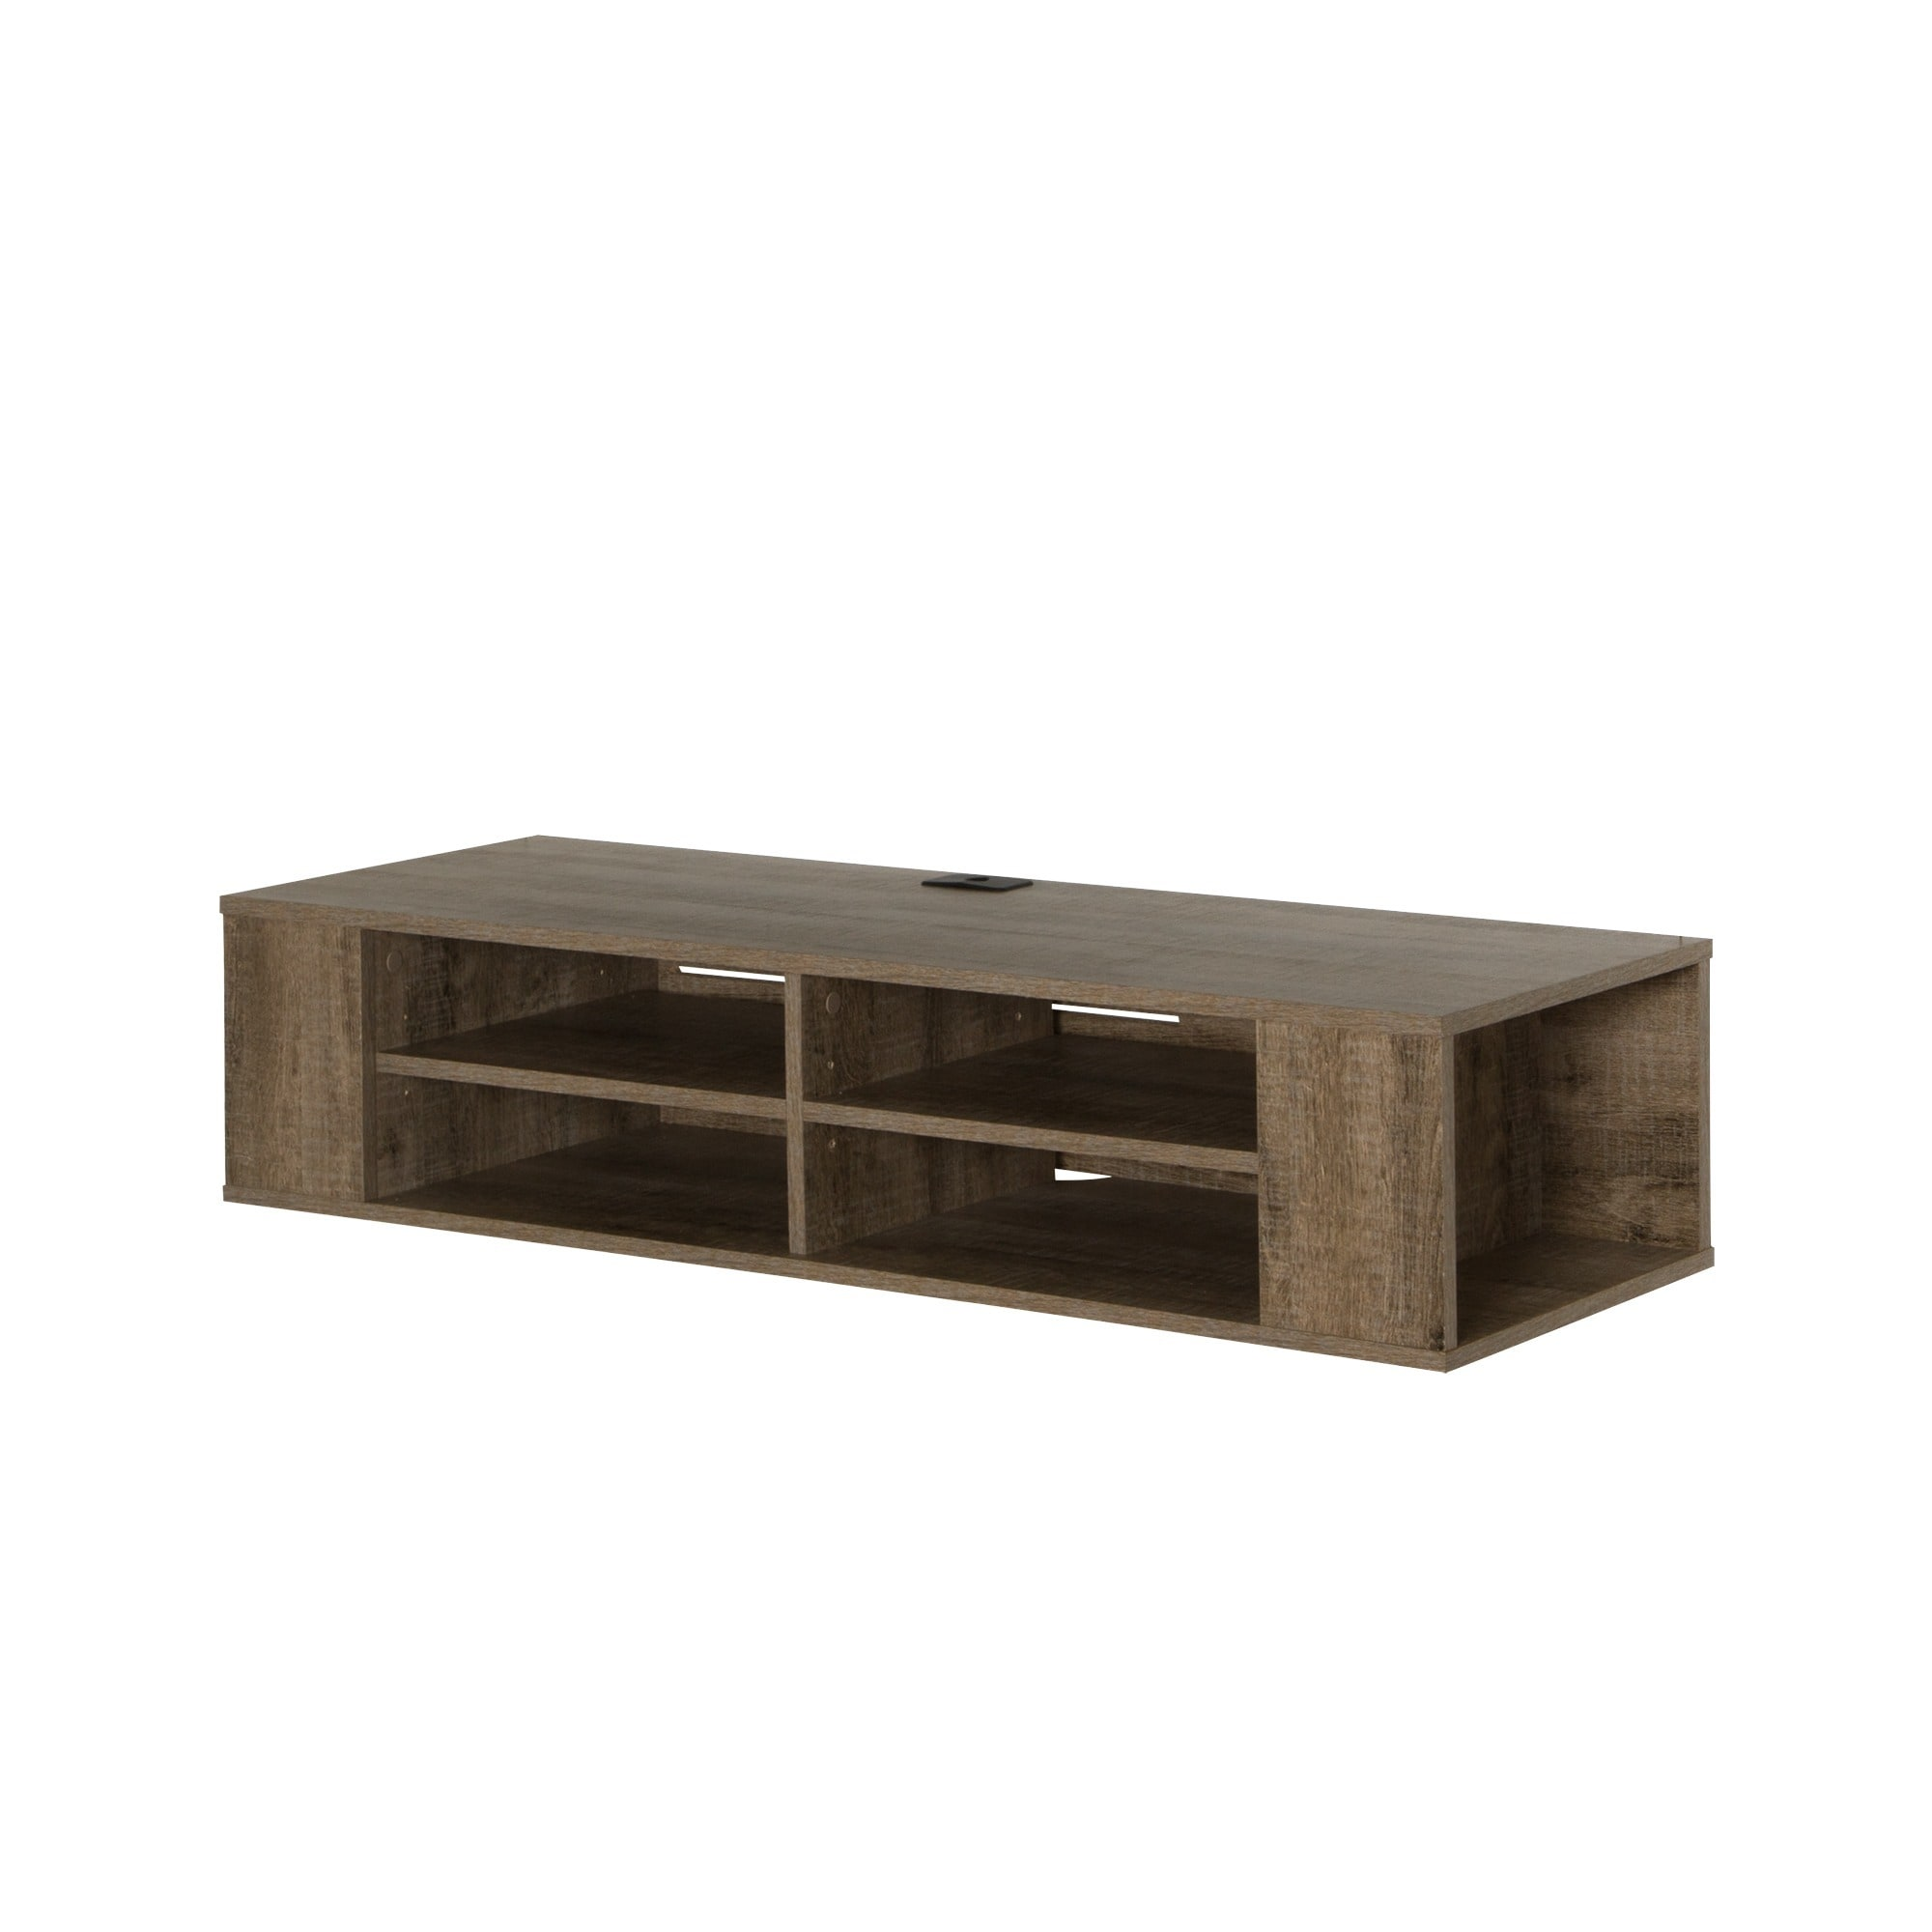 Amazing The Chic South S City Life Tv Stand